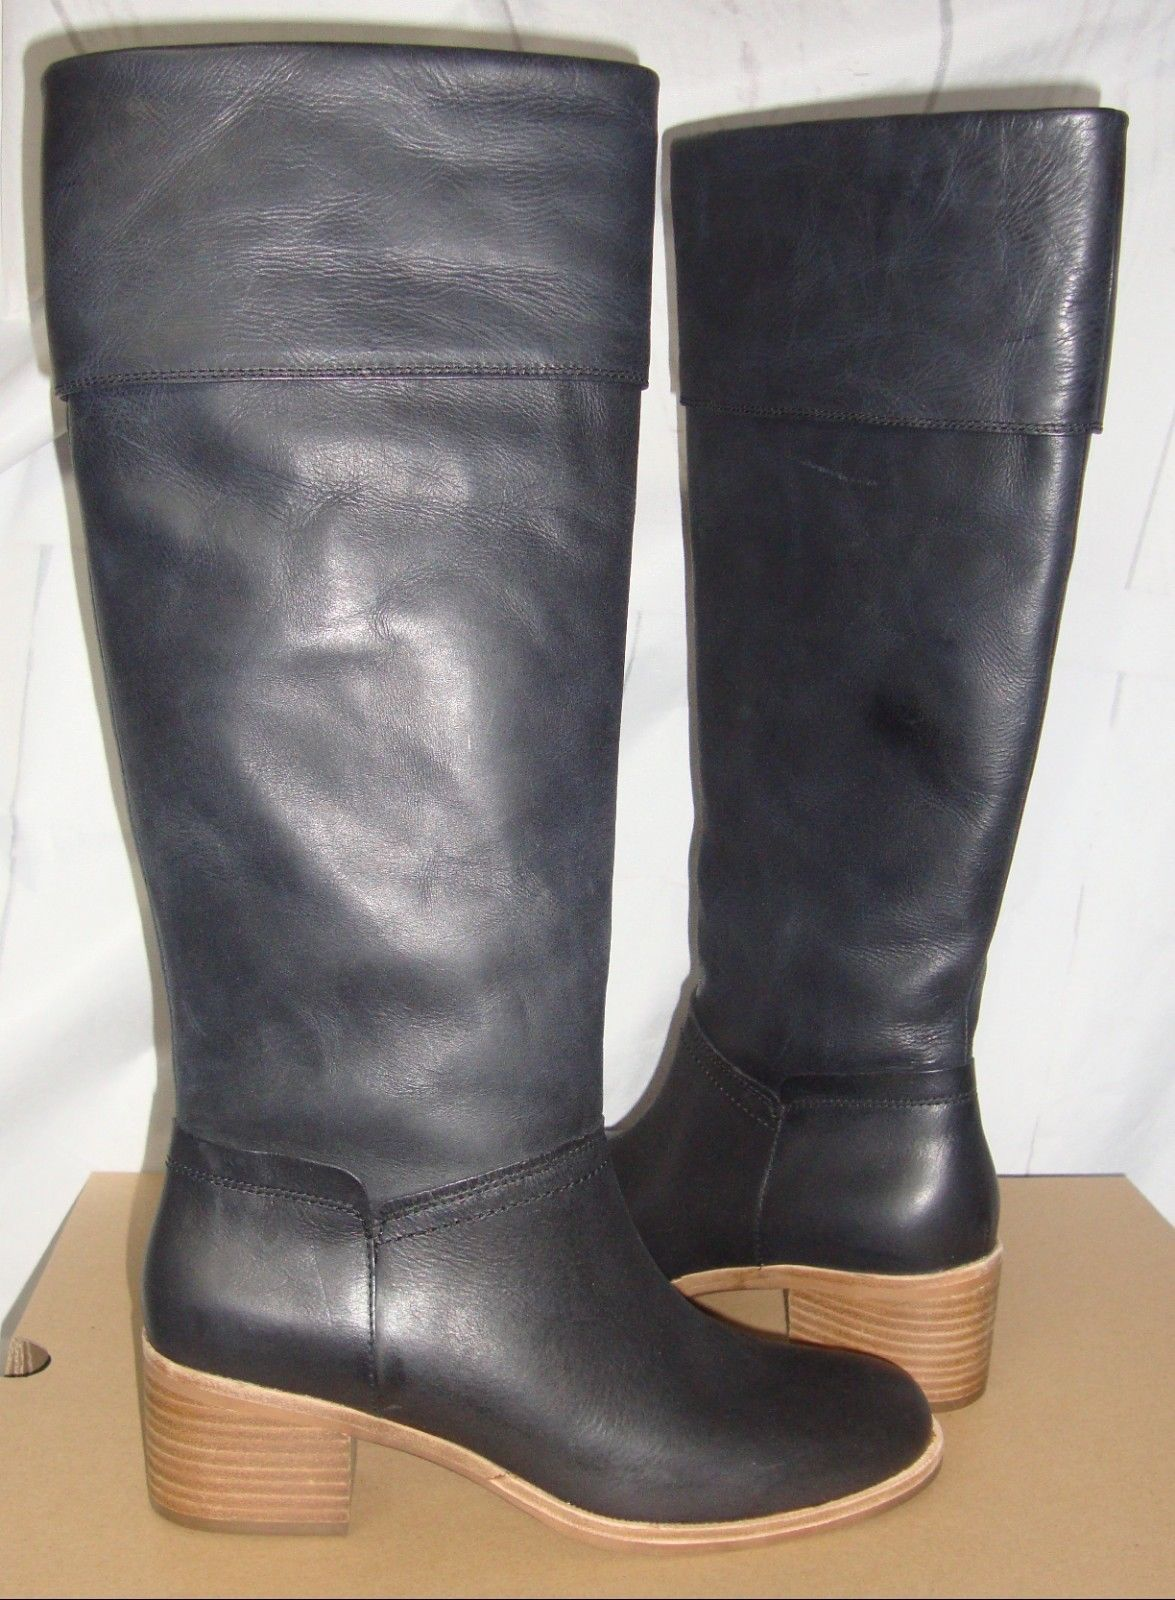 023de14942c UGG CARLIN Black Tall Leather Boots Women s and 50 similar items. 57